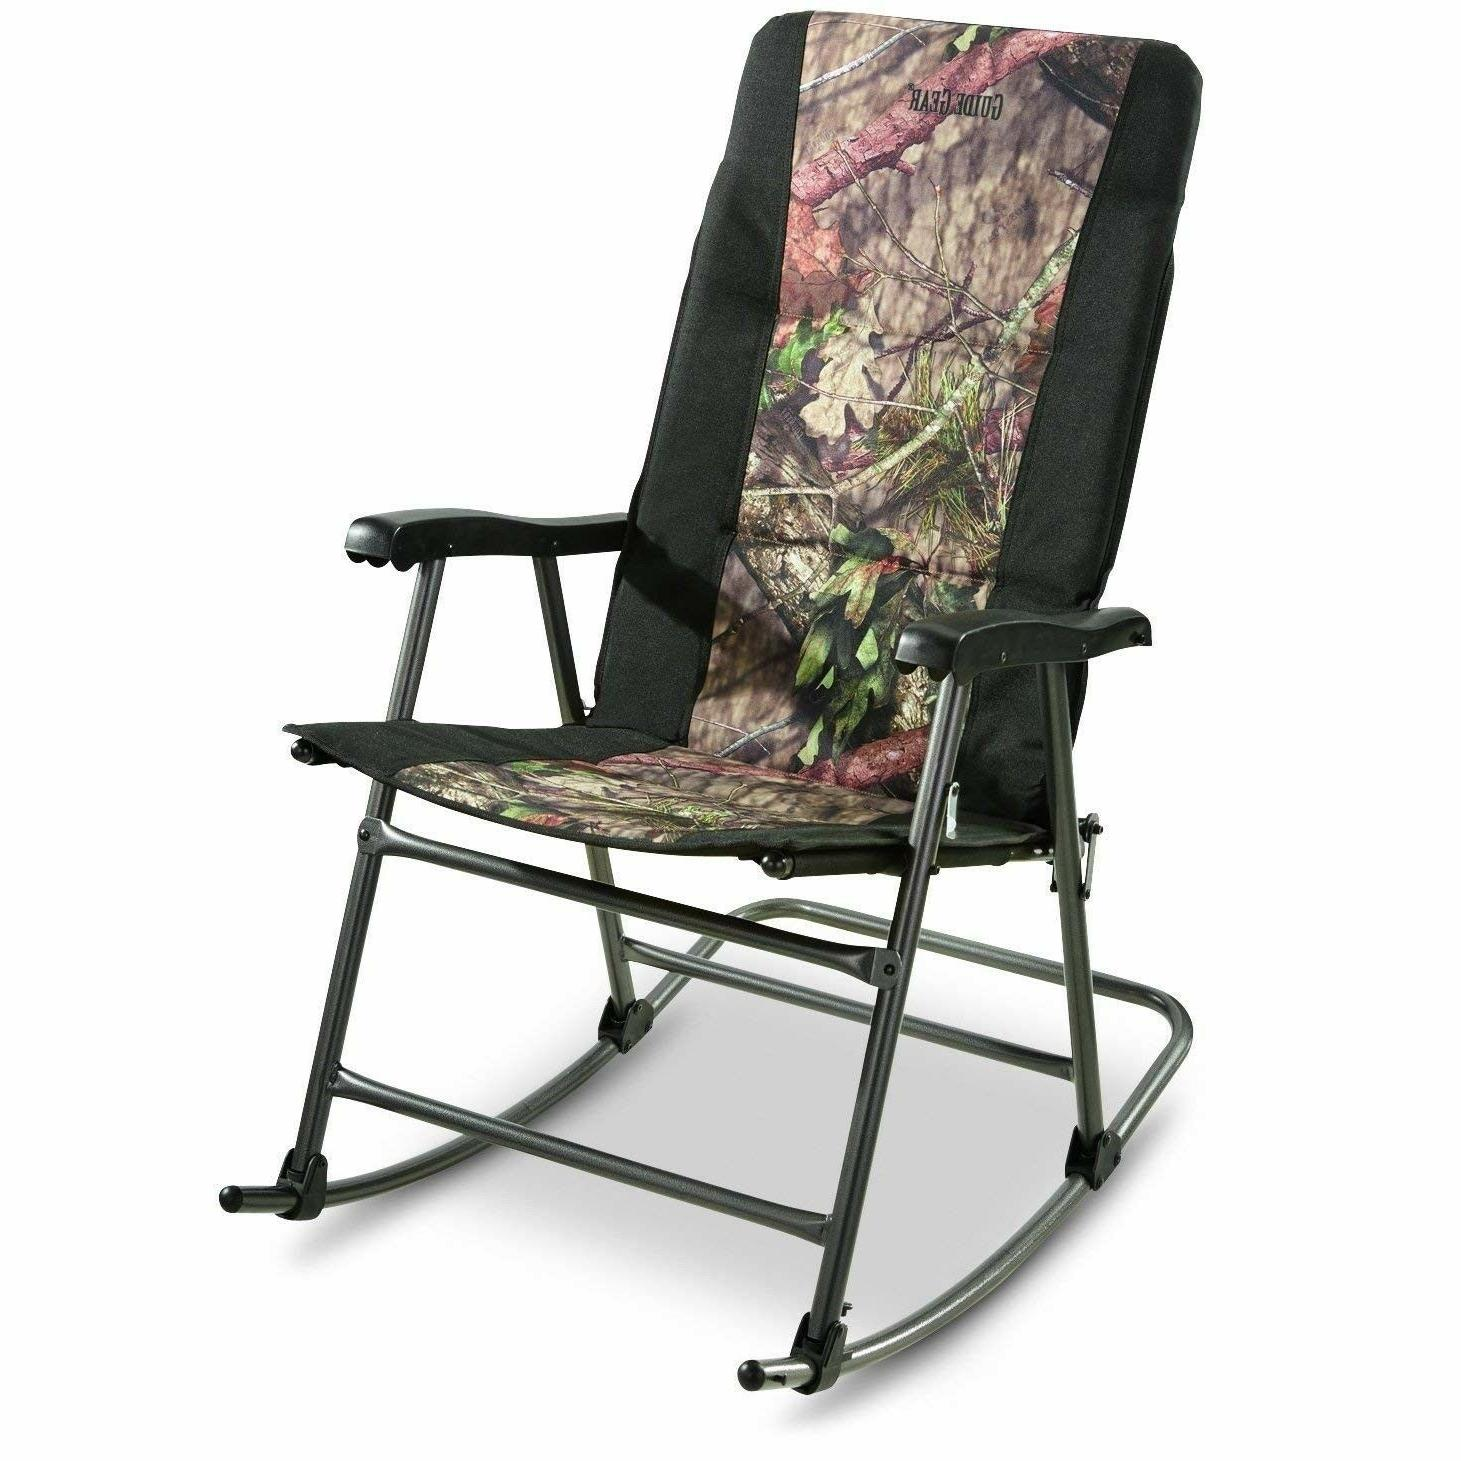 Folding 500lbs Camping Rocker Porch Outdoor Seat Furniture,